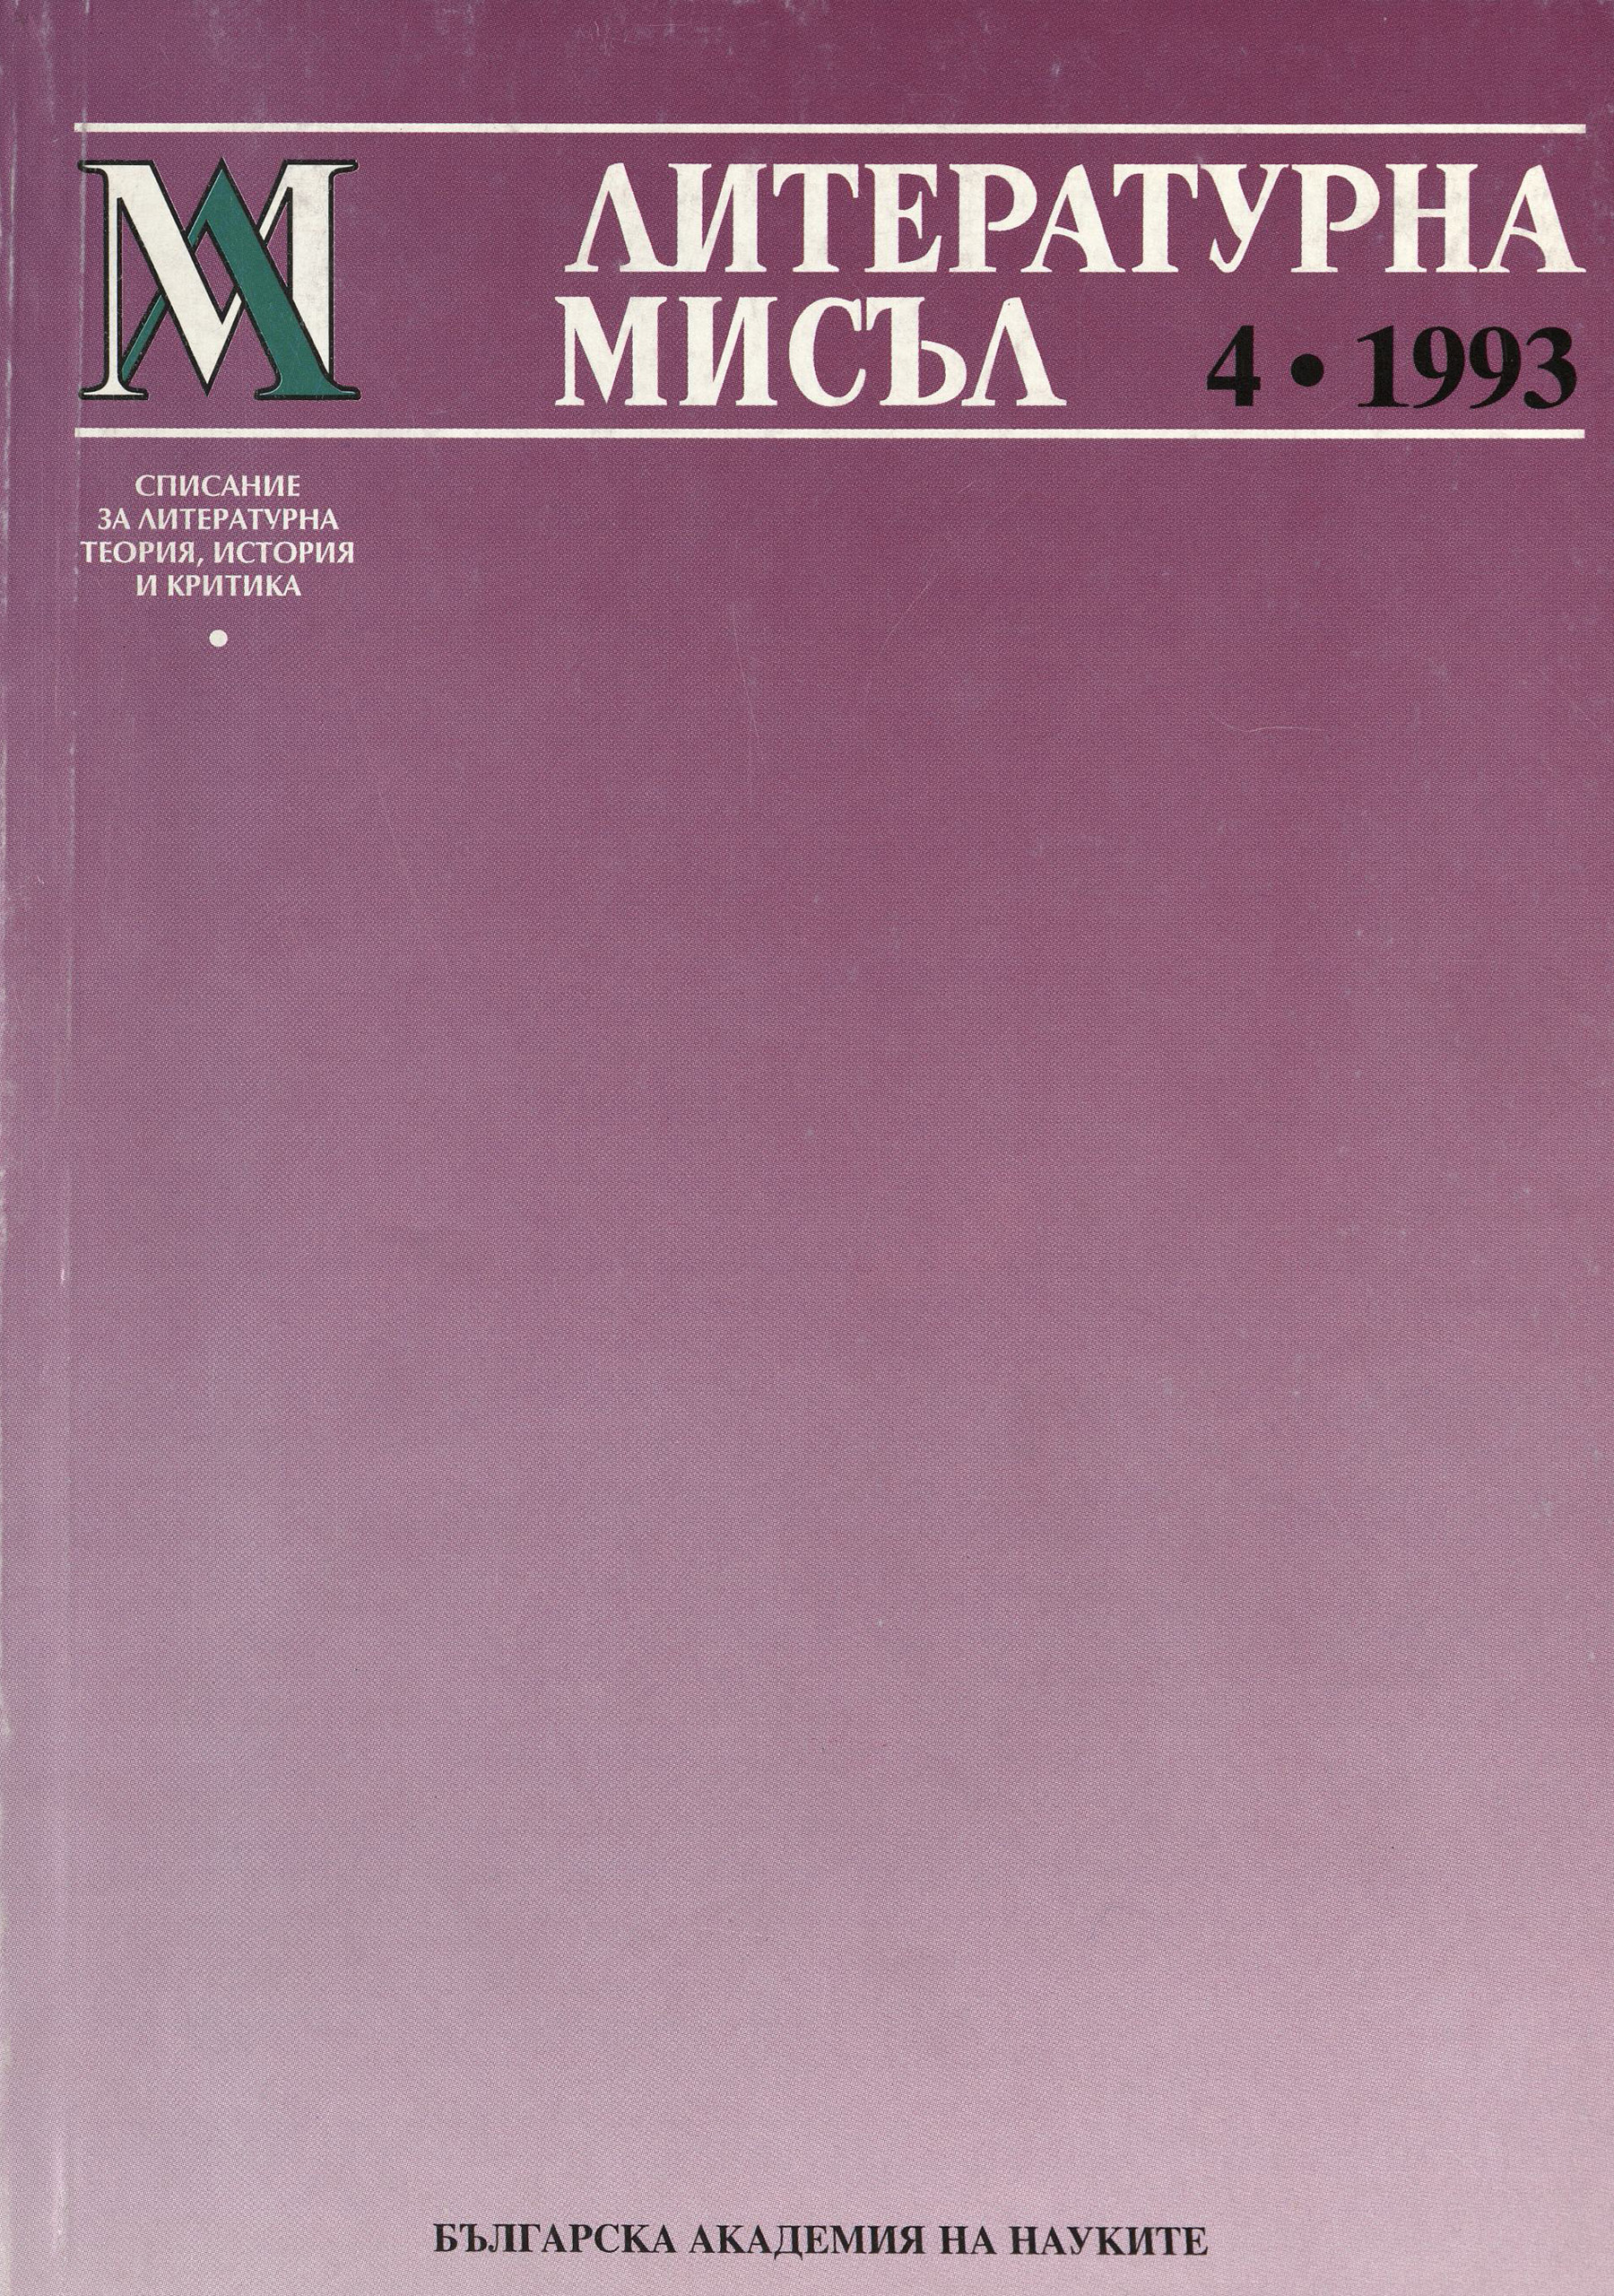 Issue 4, 1993